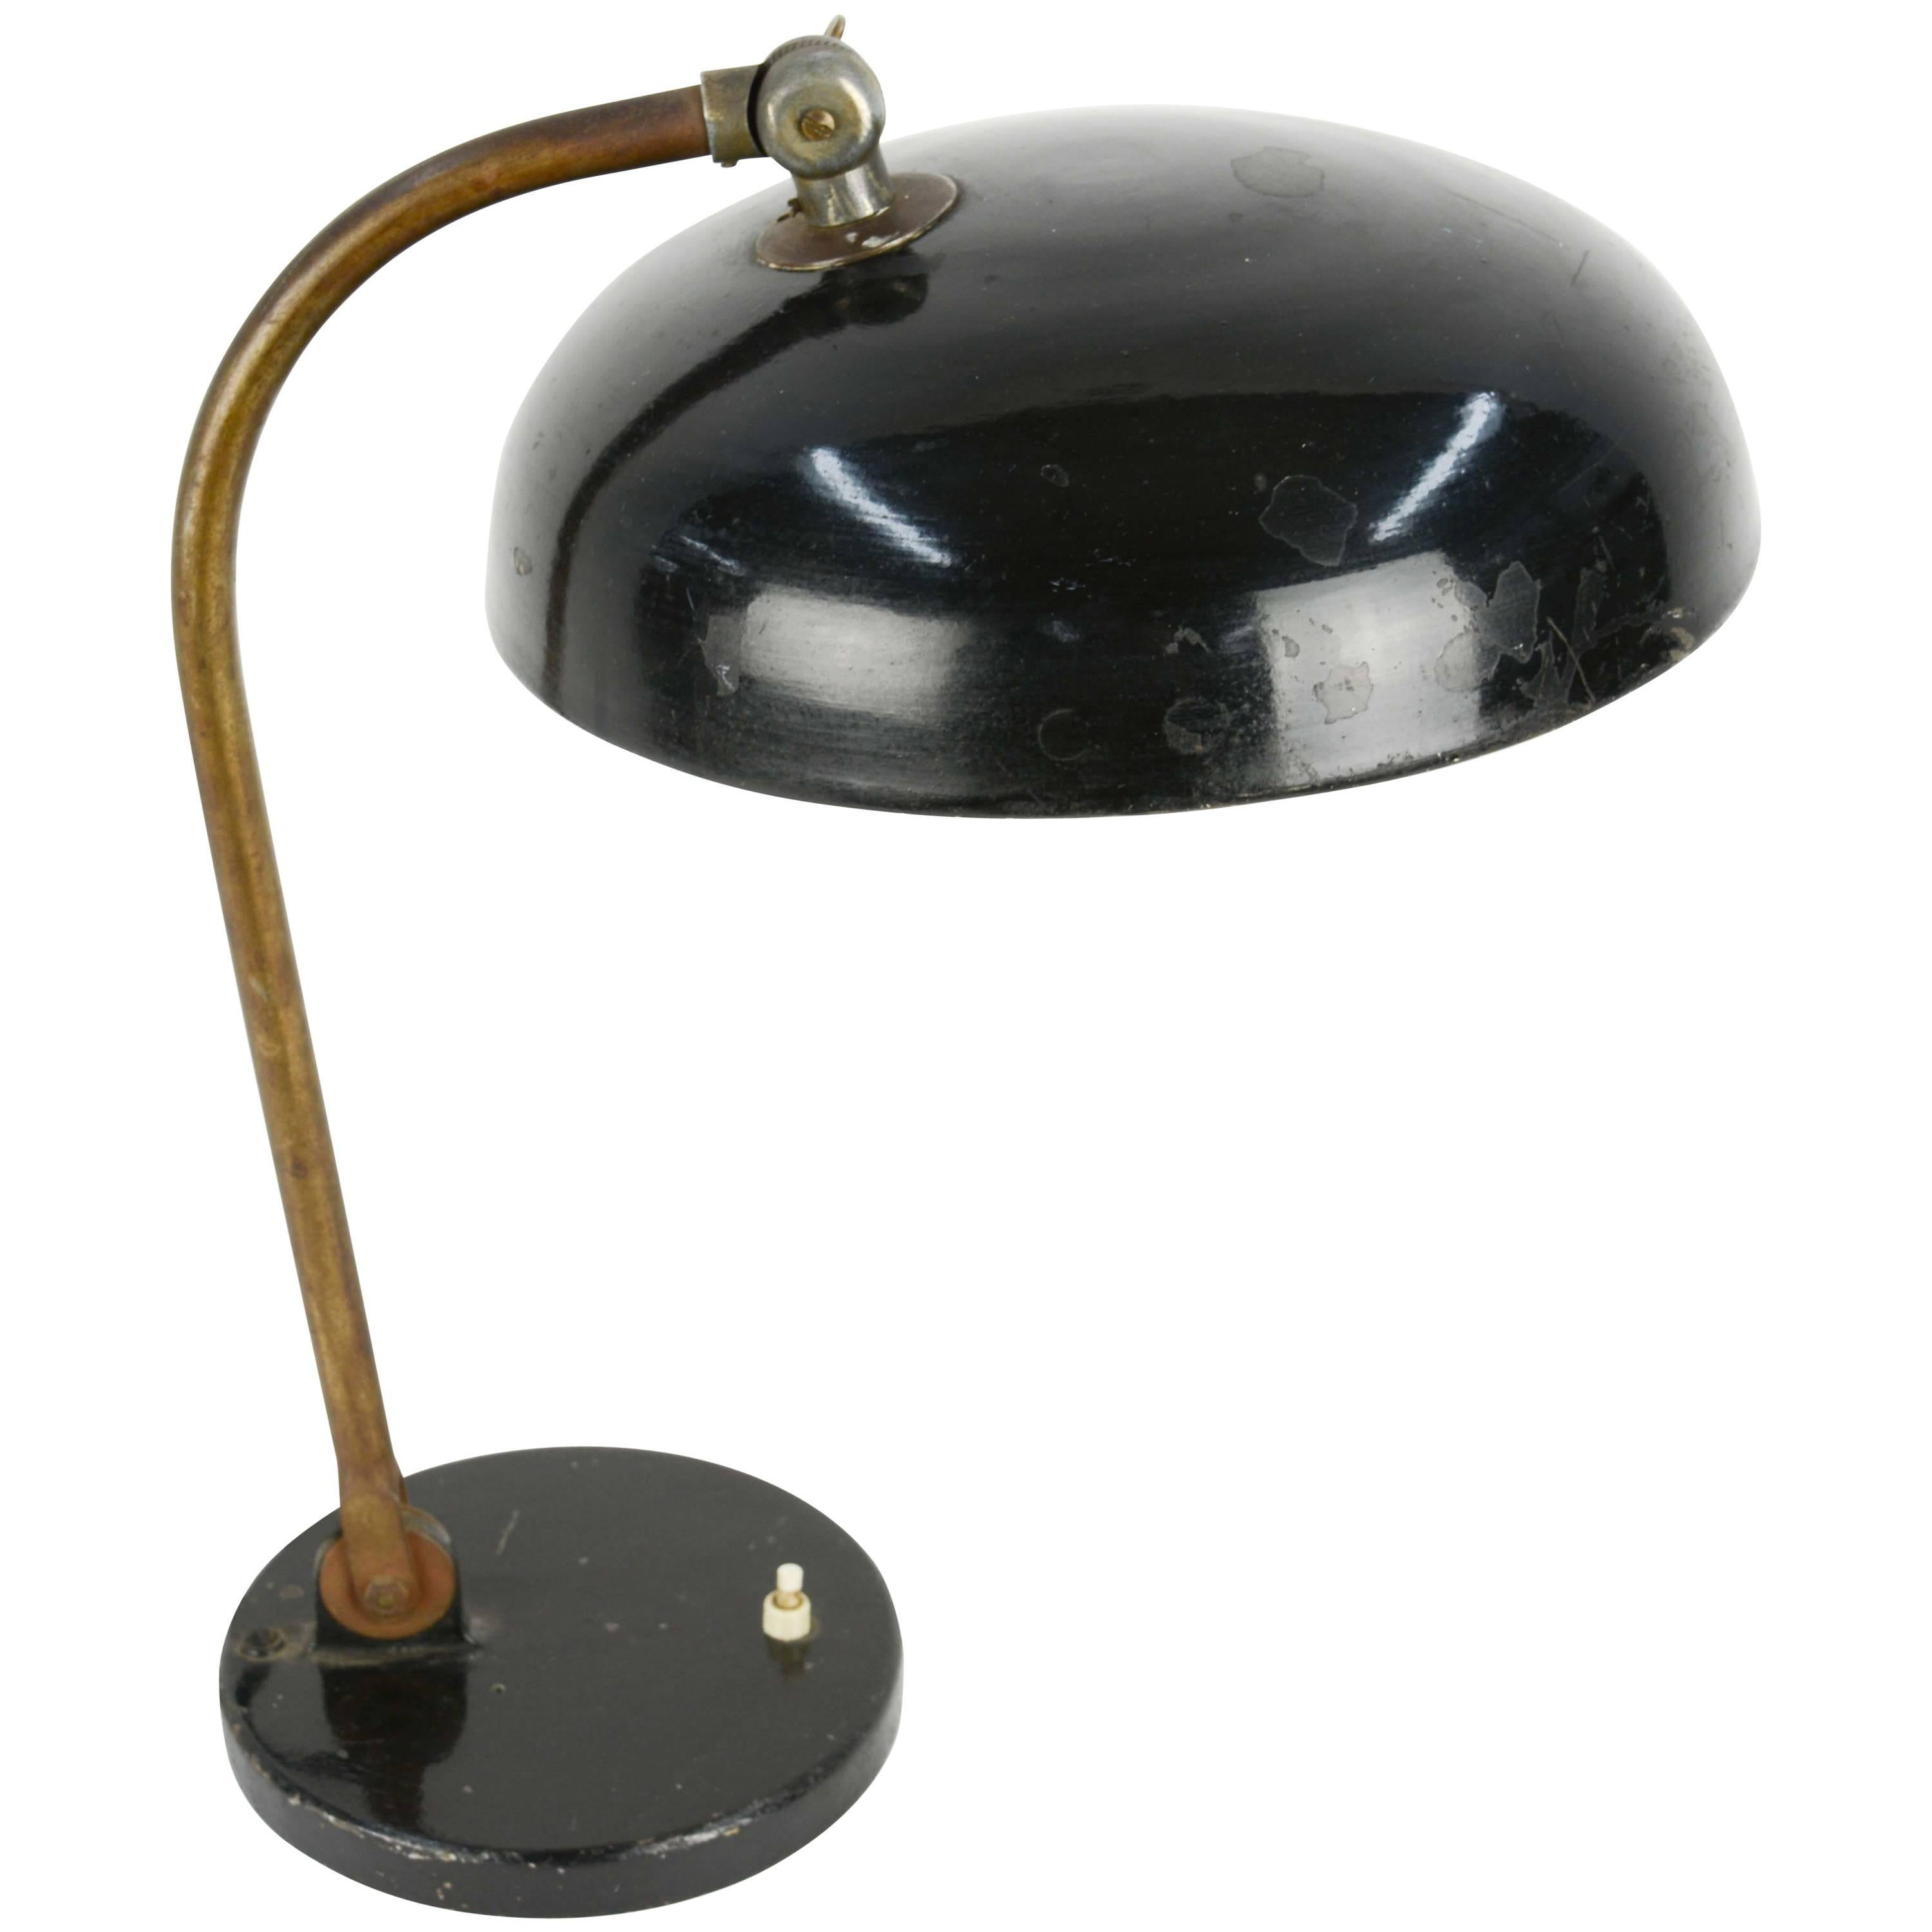 1920s Table Lamps - 365 For Sale at 1stdibs